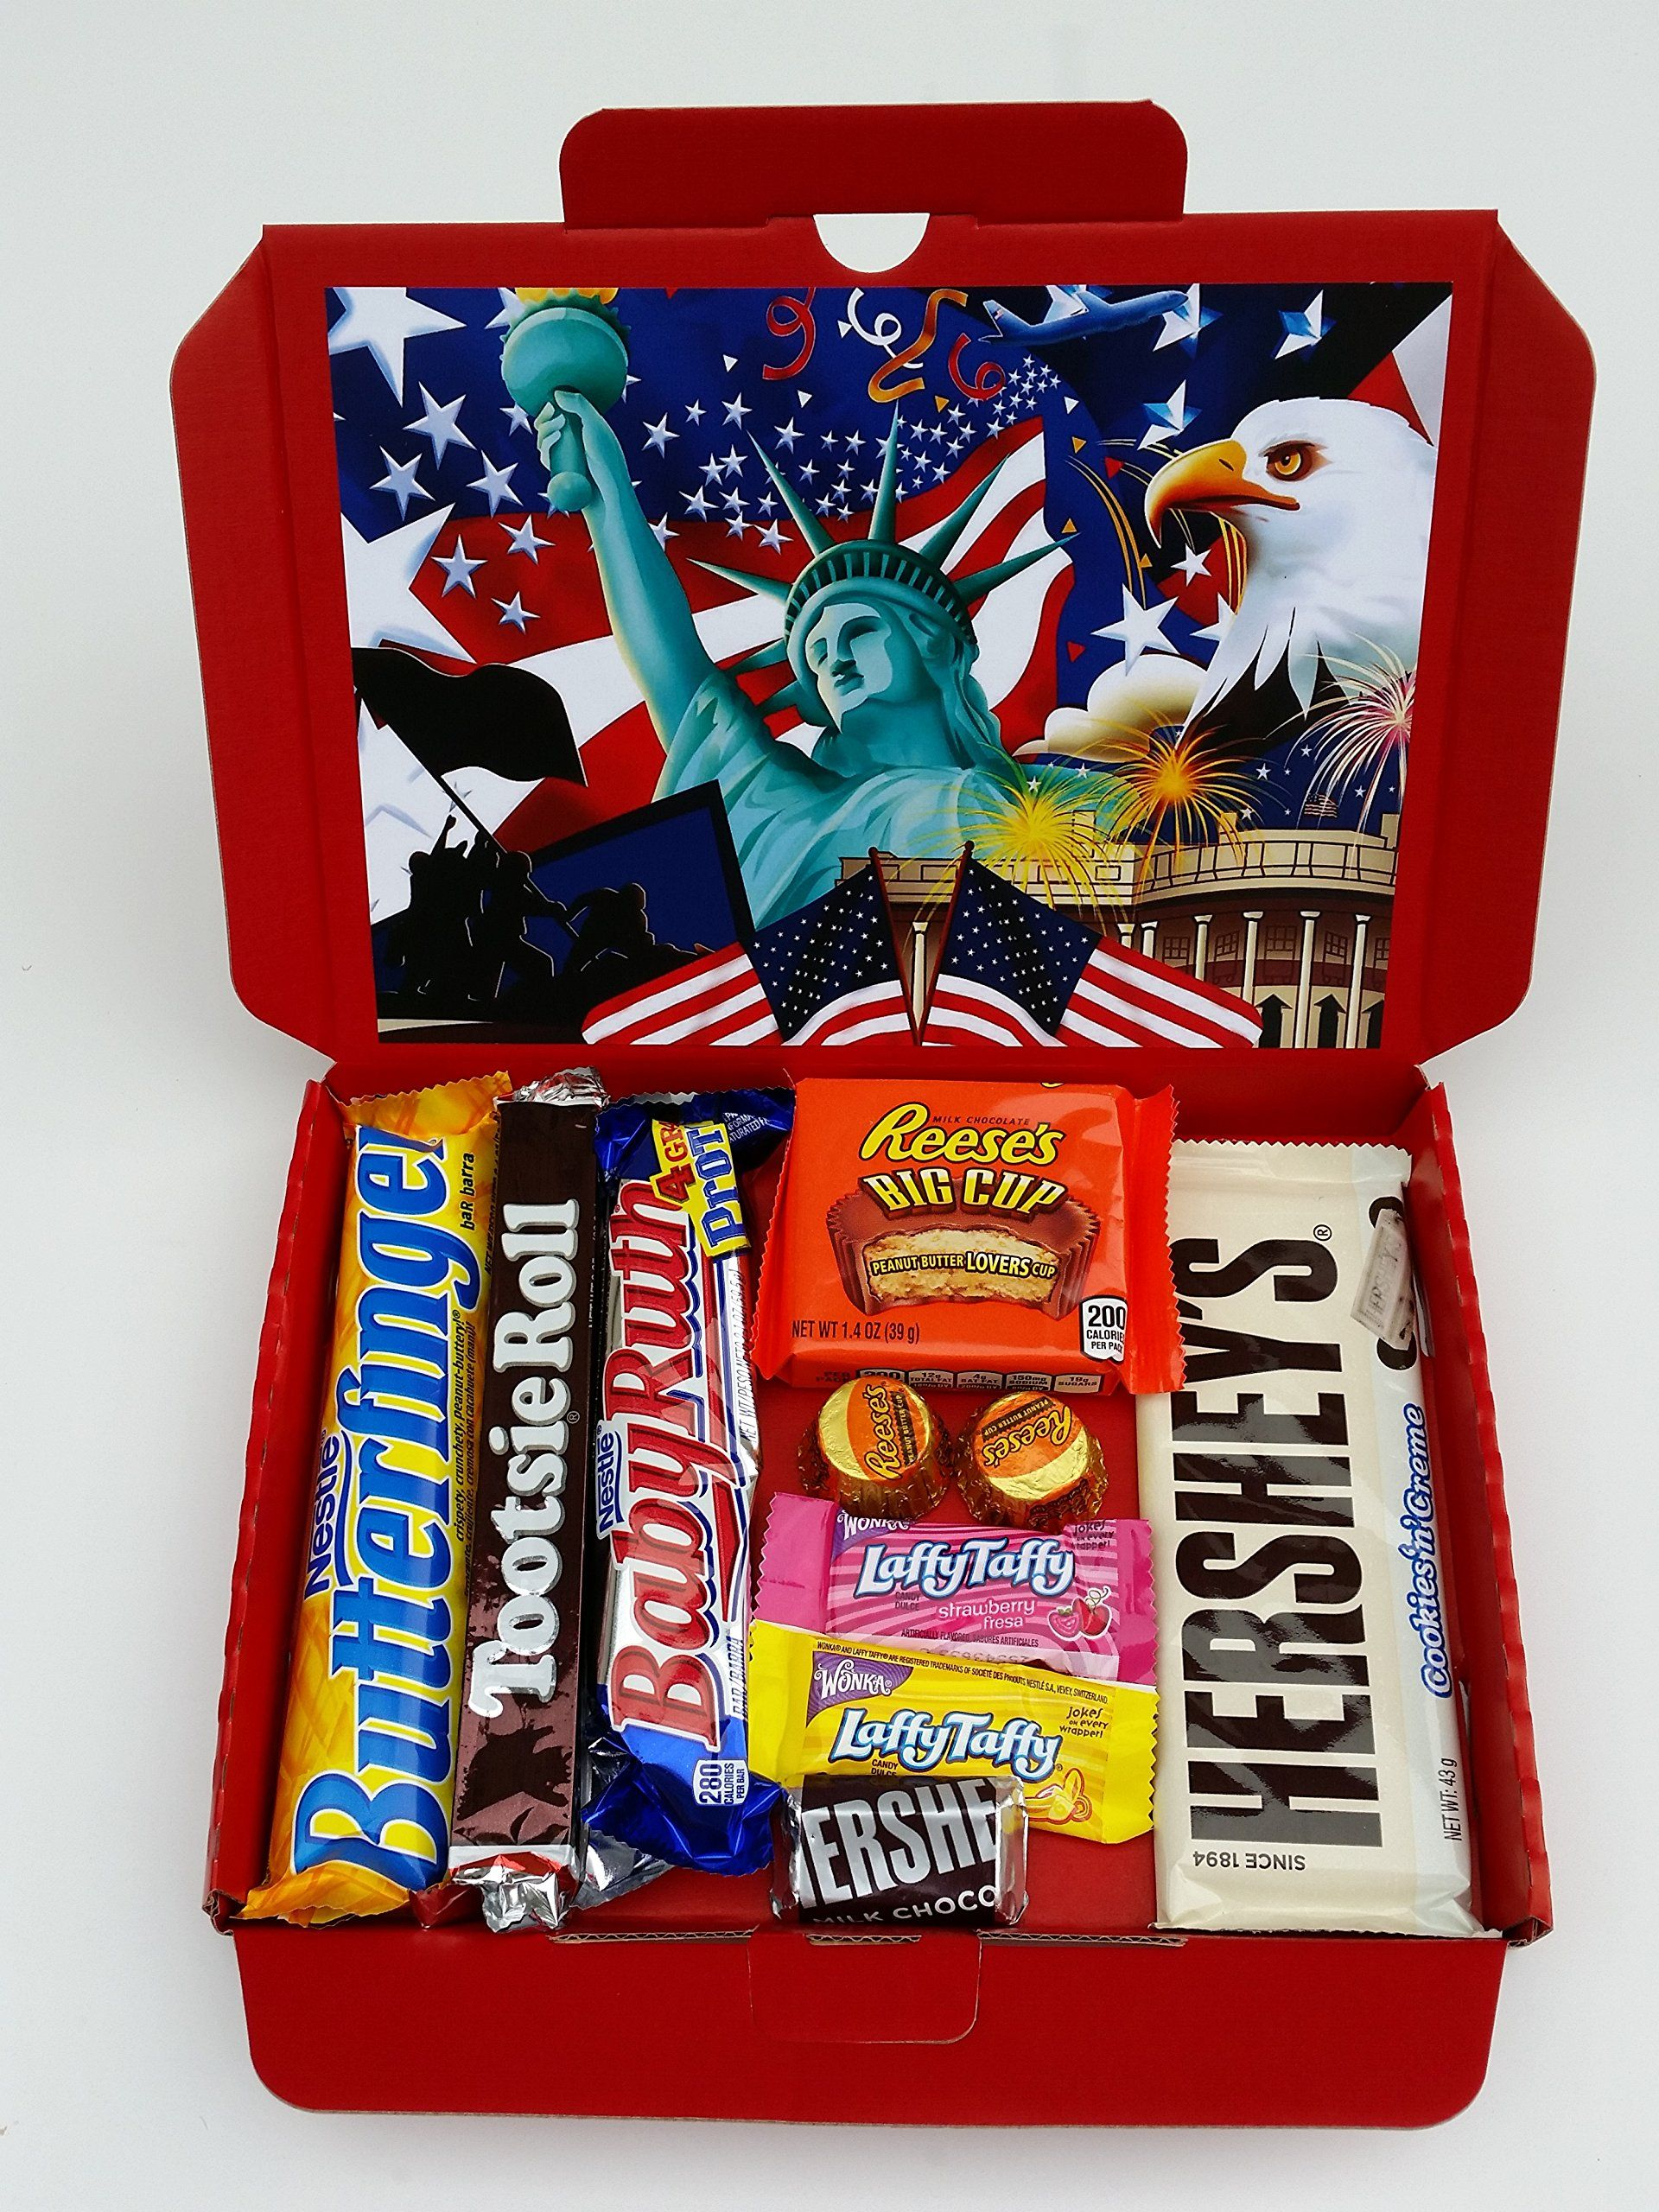 American Chocolate Selection Box Sweets Candy Gift Box